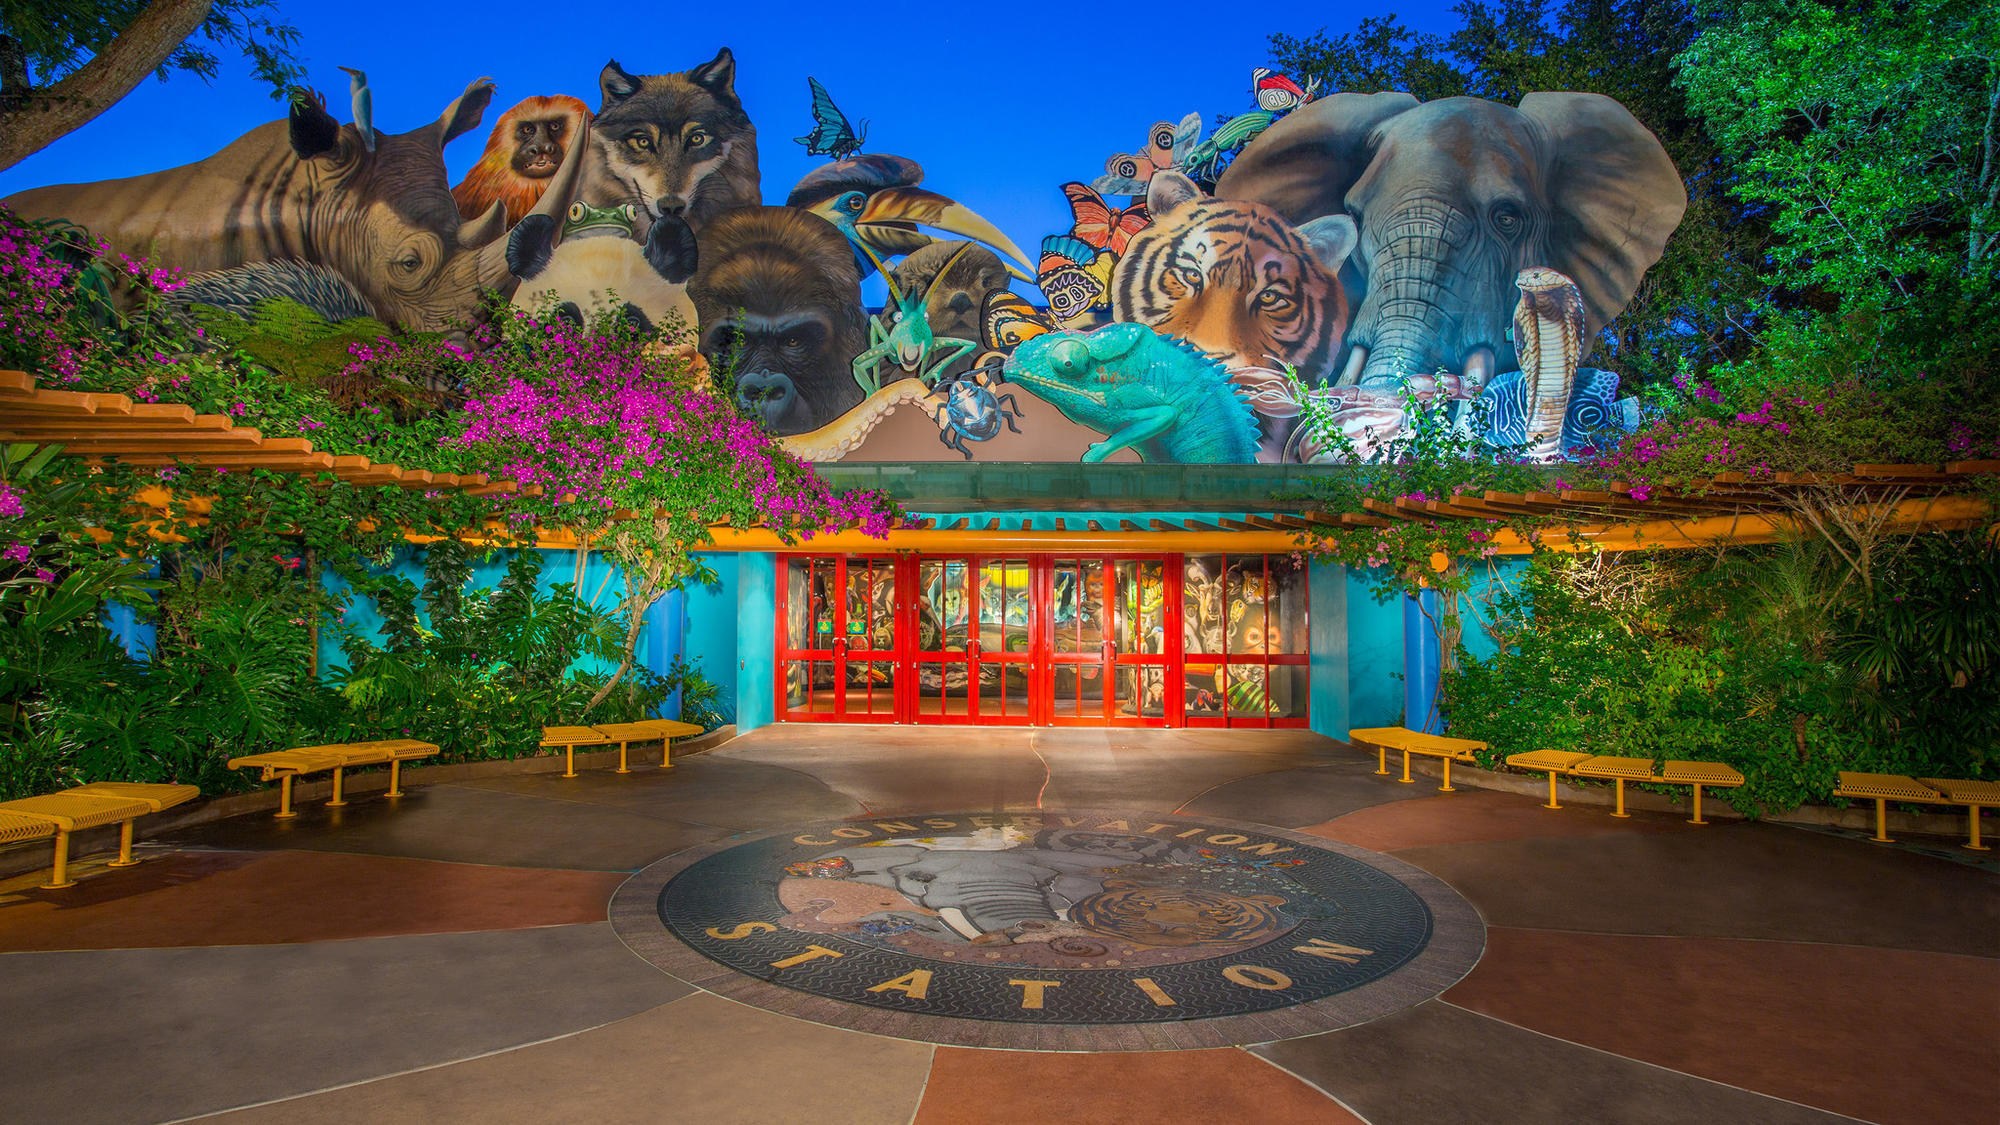 Disney: Rafiki's Planet Watch closing next month - Orlando Sentinel